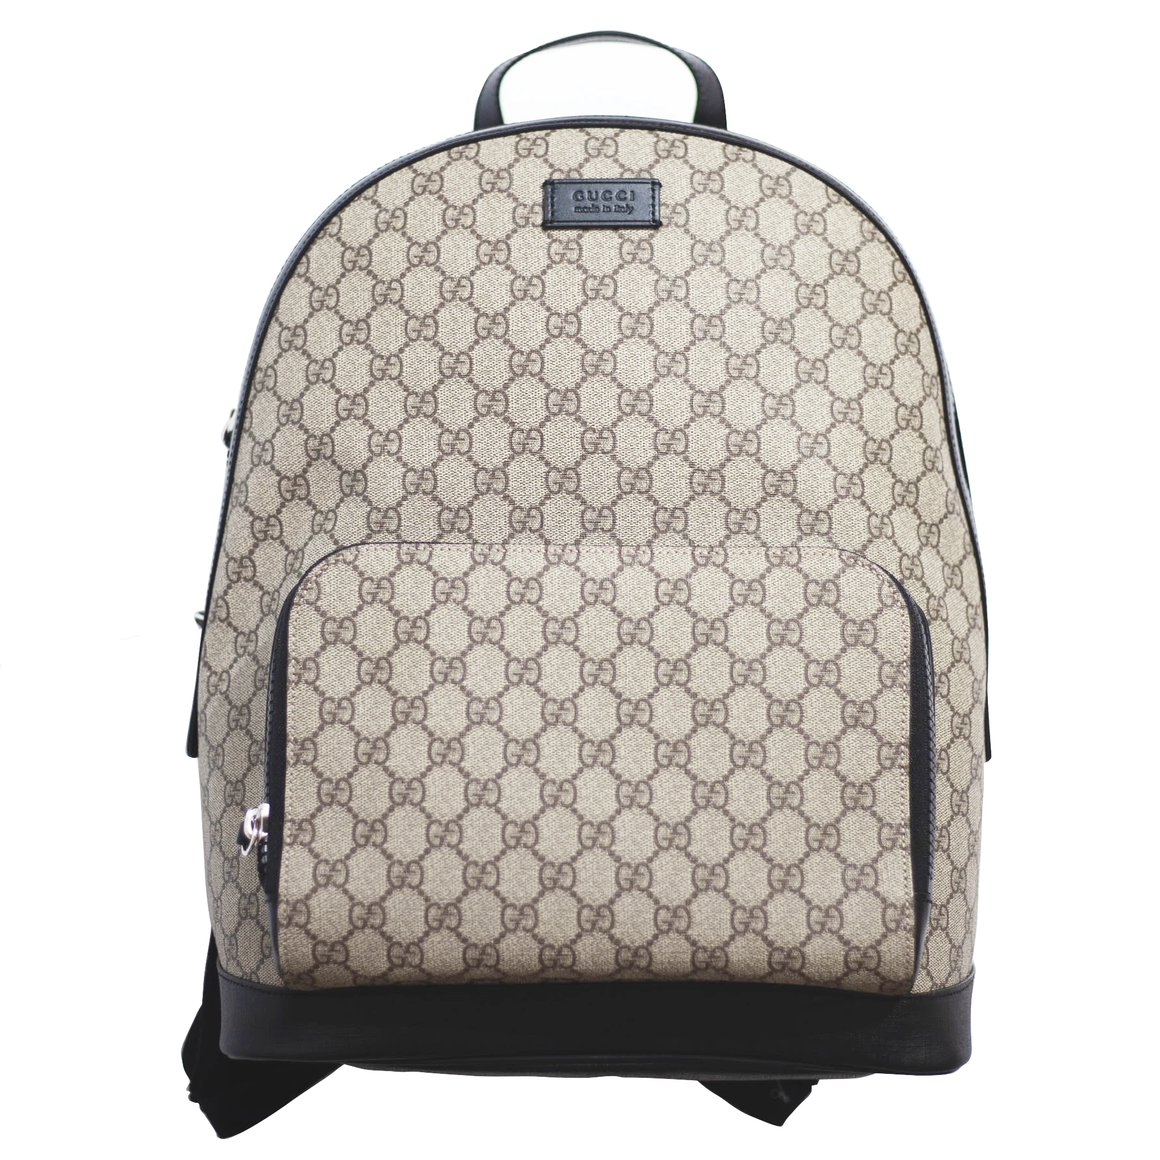 GUCCI Signature Backpack - Brown